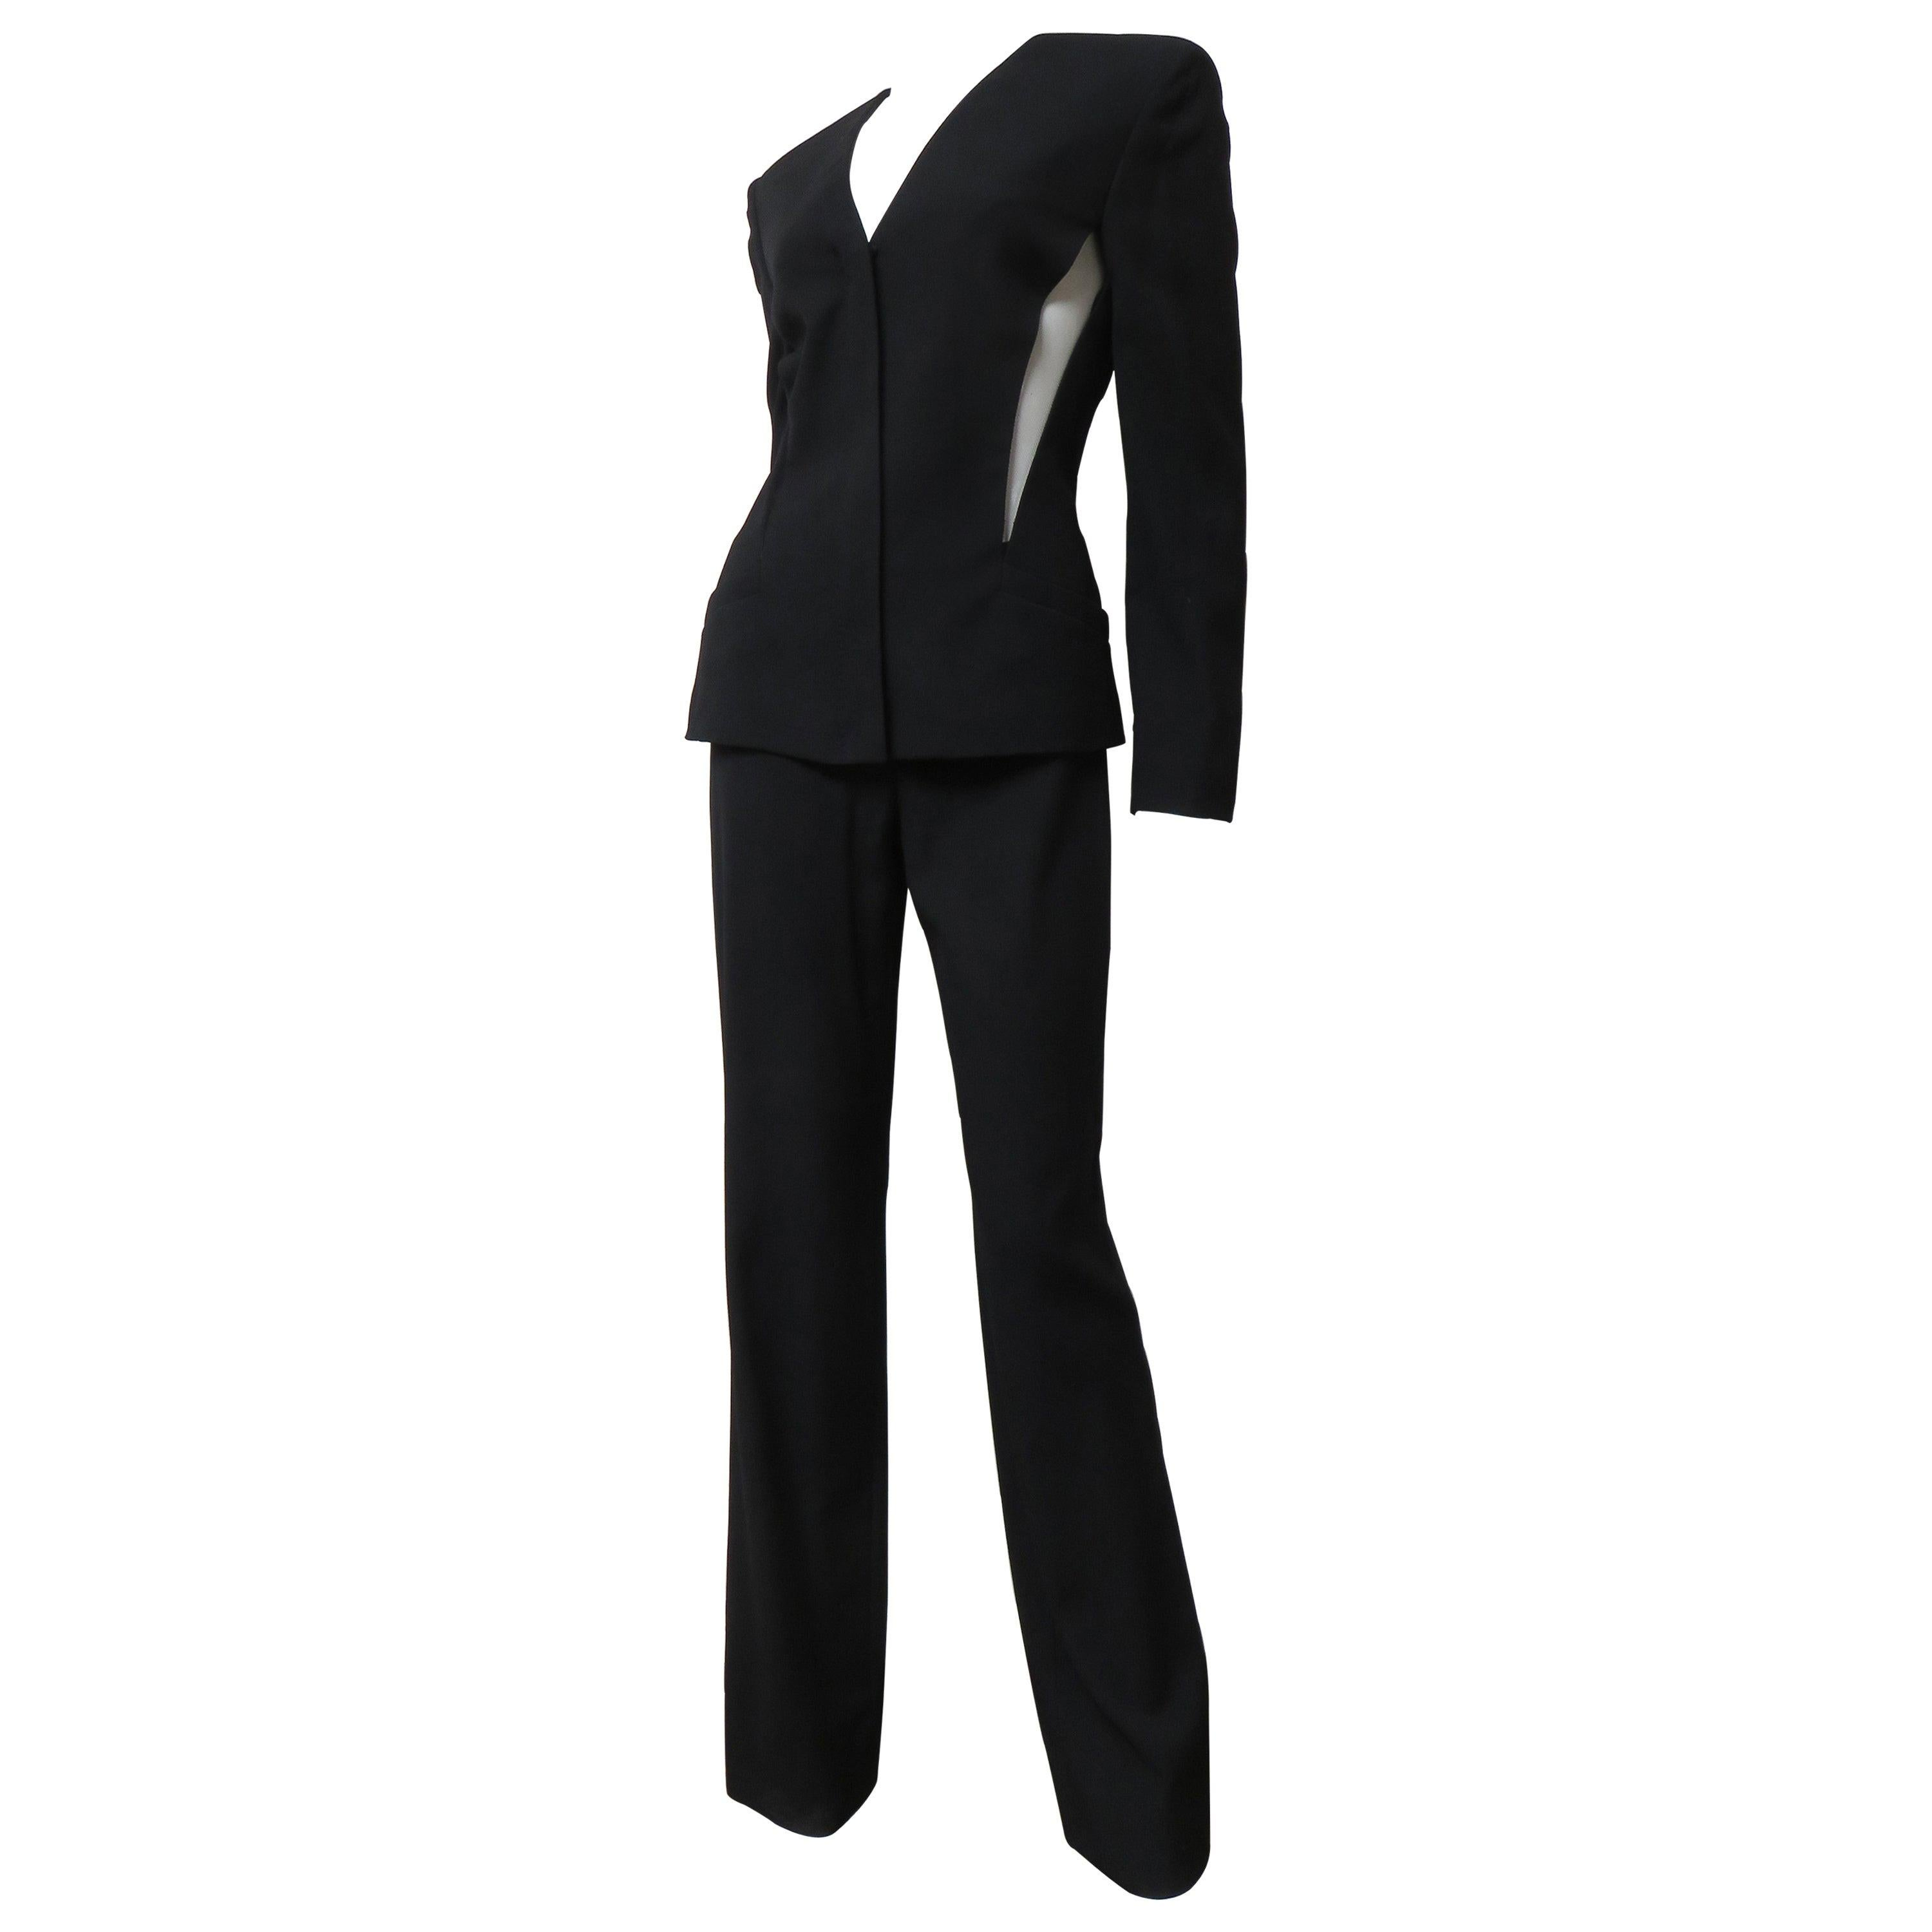 Gianni Versace Couture Silk Pant Suit with Cut outs